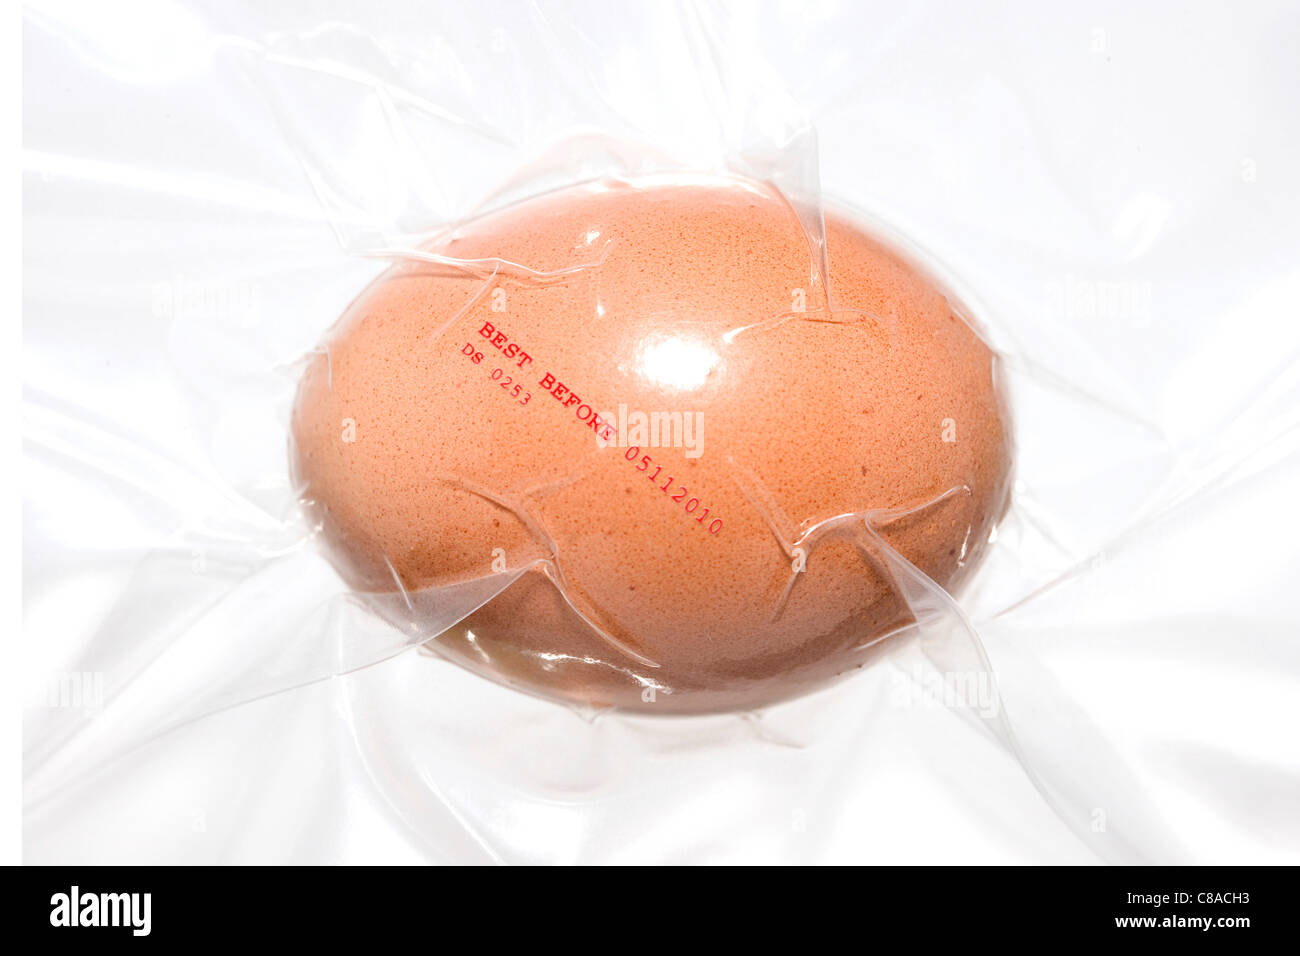 Egg vacuum-packed - Stock Image